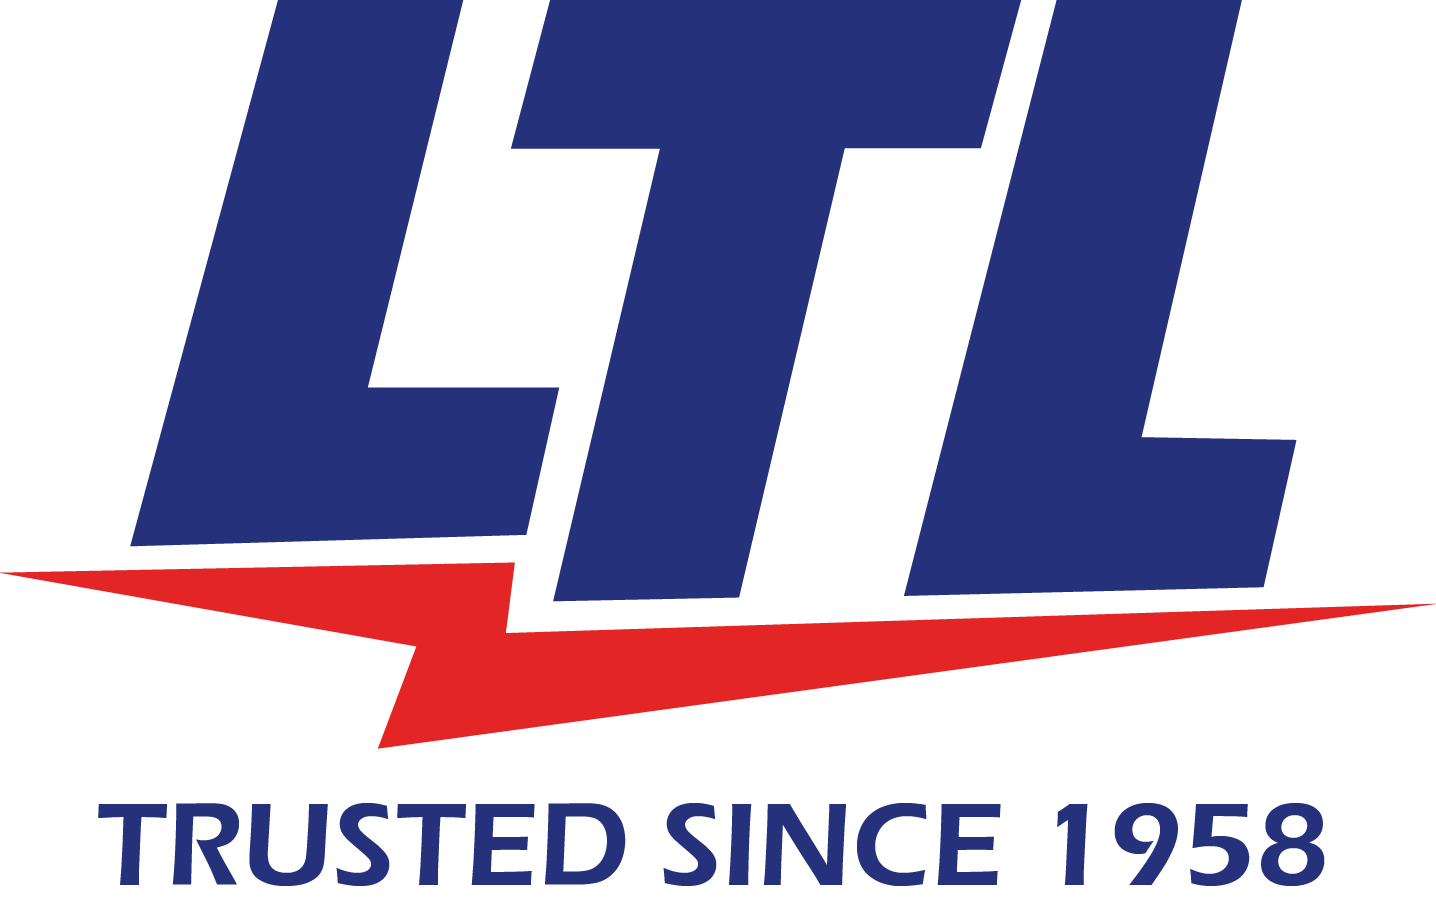 LTL Sponsored the 2015 Electric Utility Hockey Tournament